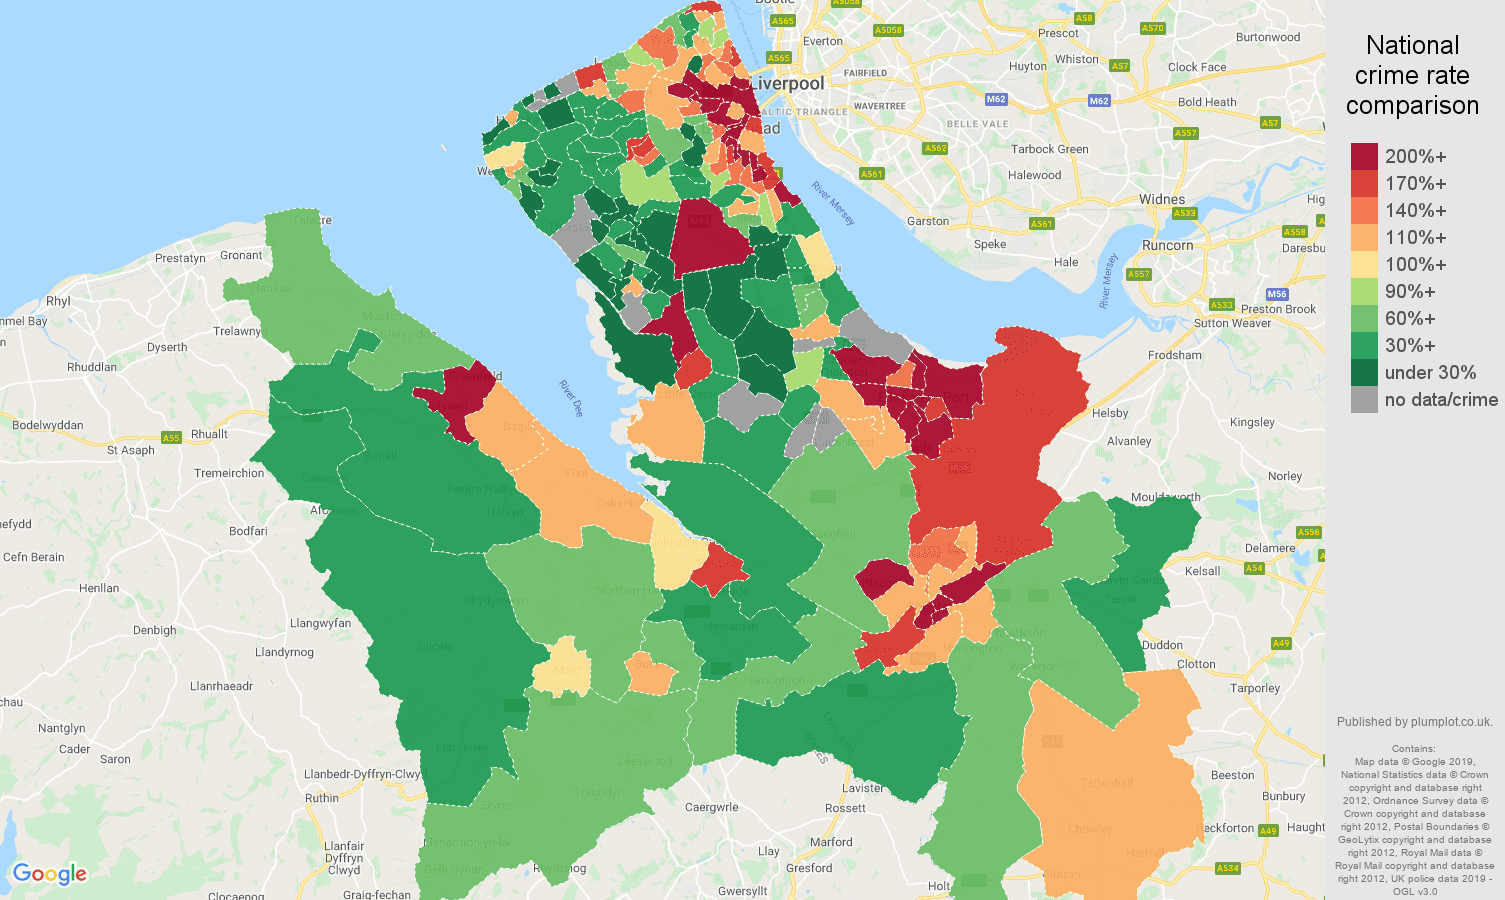 Chester public order crime rate comparison map